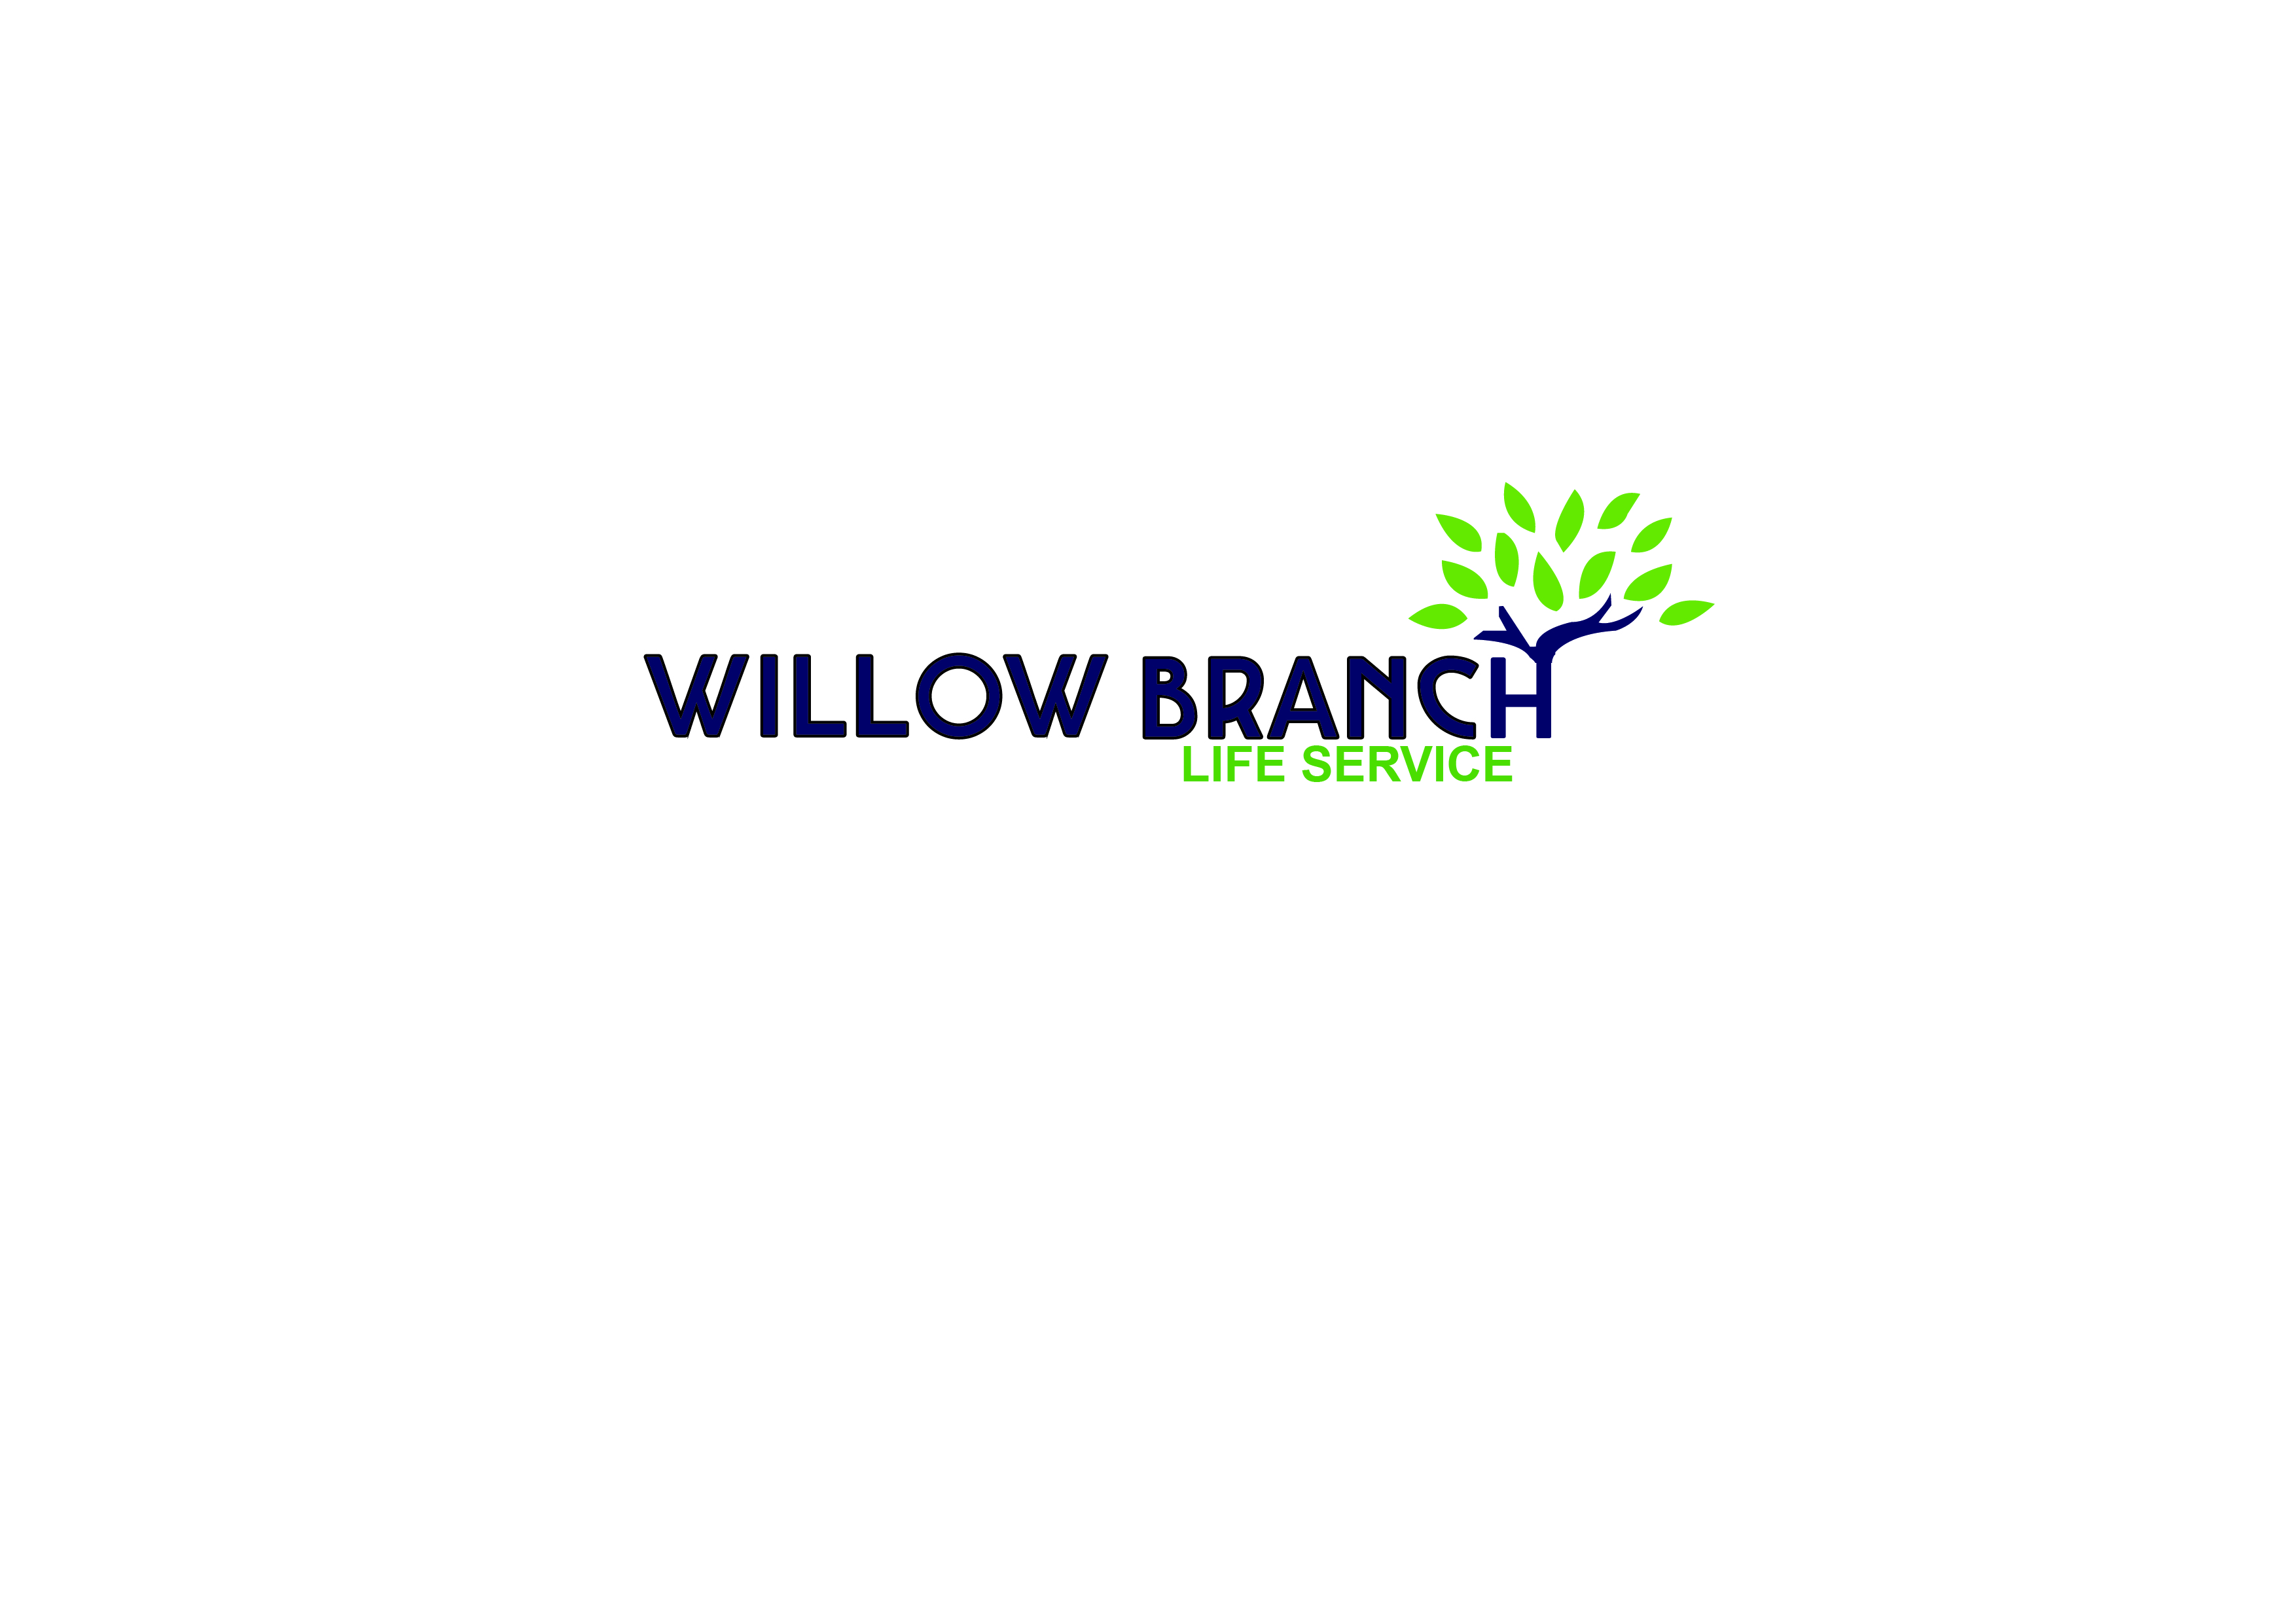 Logo Design by Anum Aamir - Entry No. 95 in the Logo Design Contest Artistic Logo Design for Willow Branch Life Service.